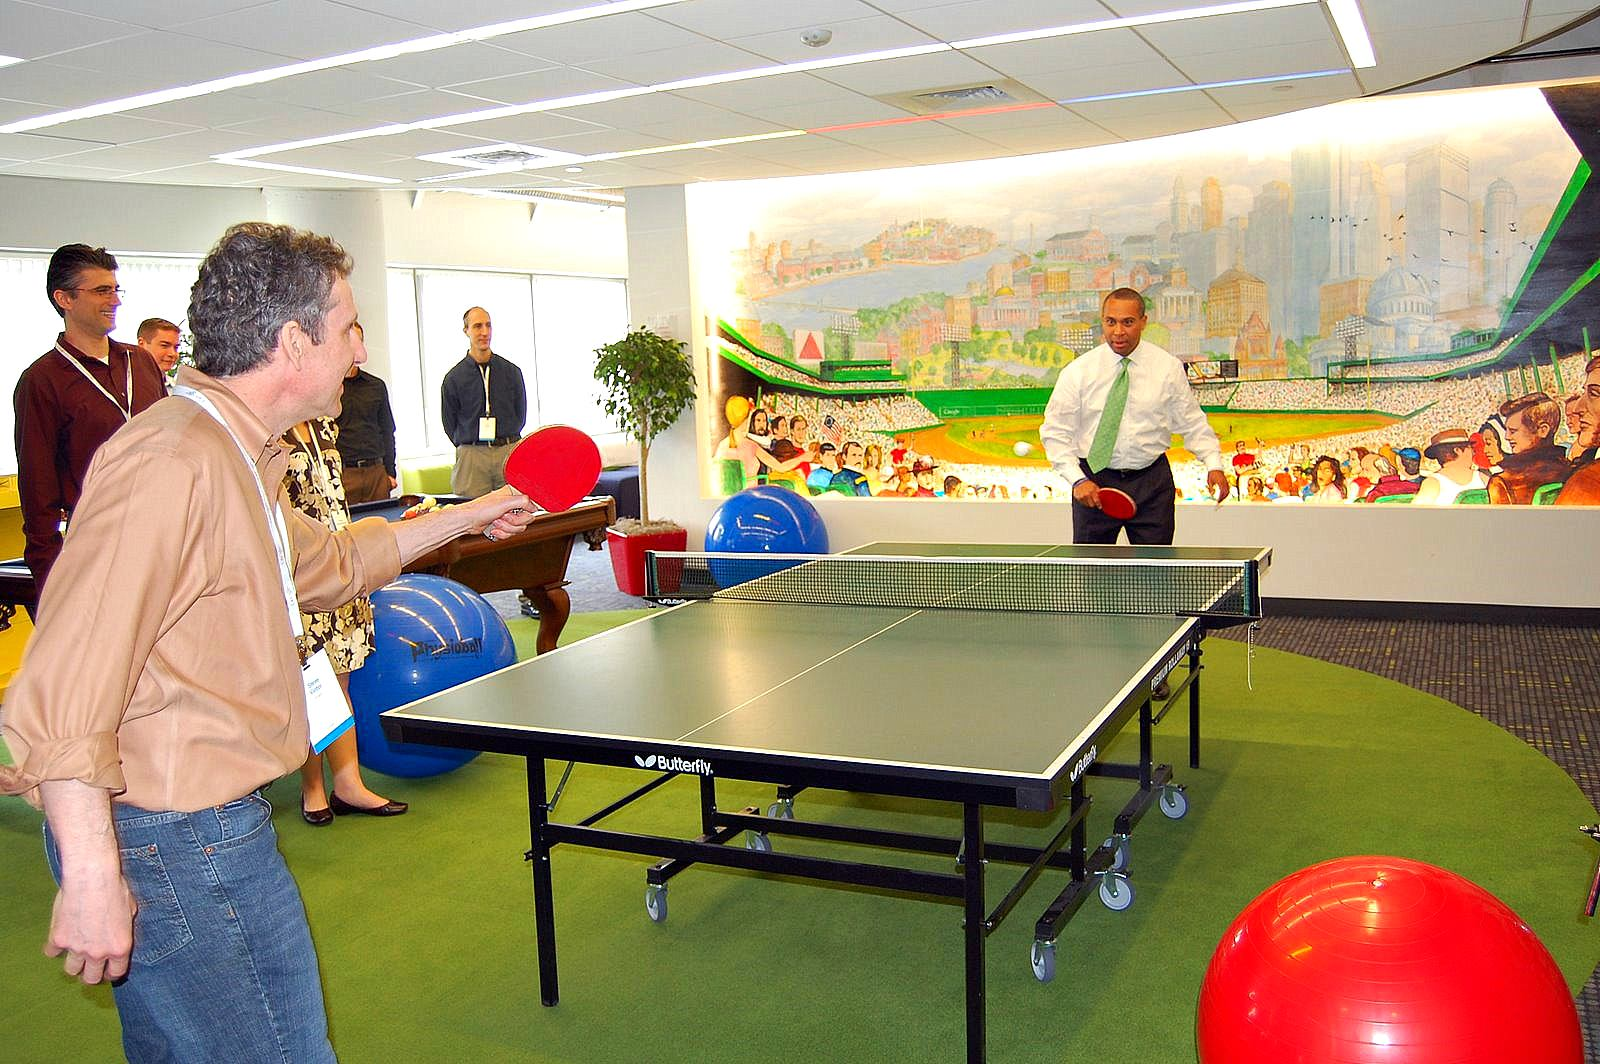 Top Coolest Offices in NYC